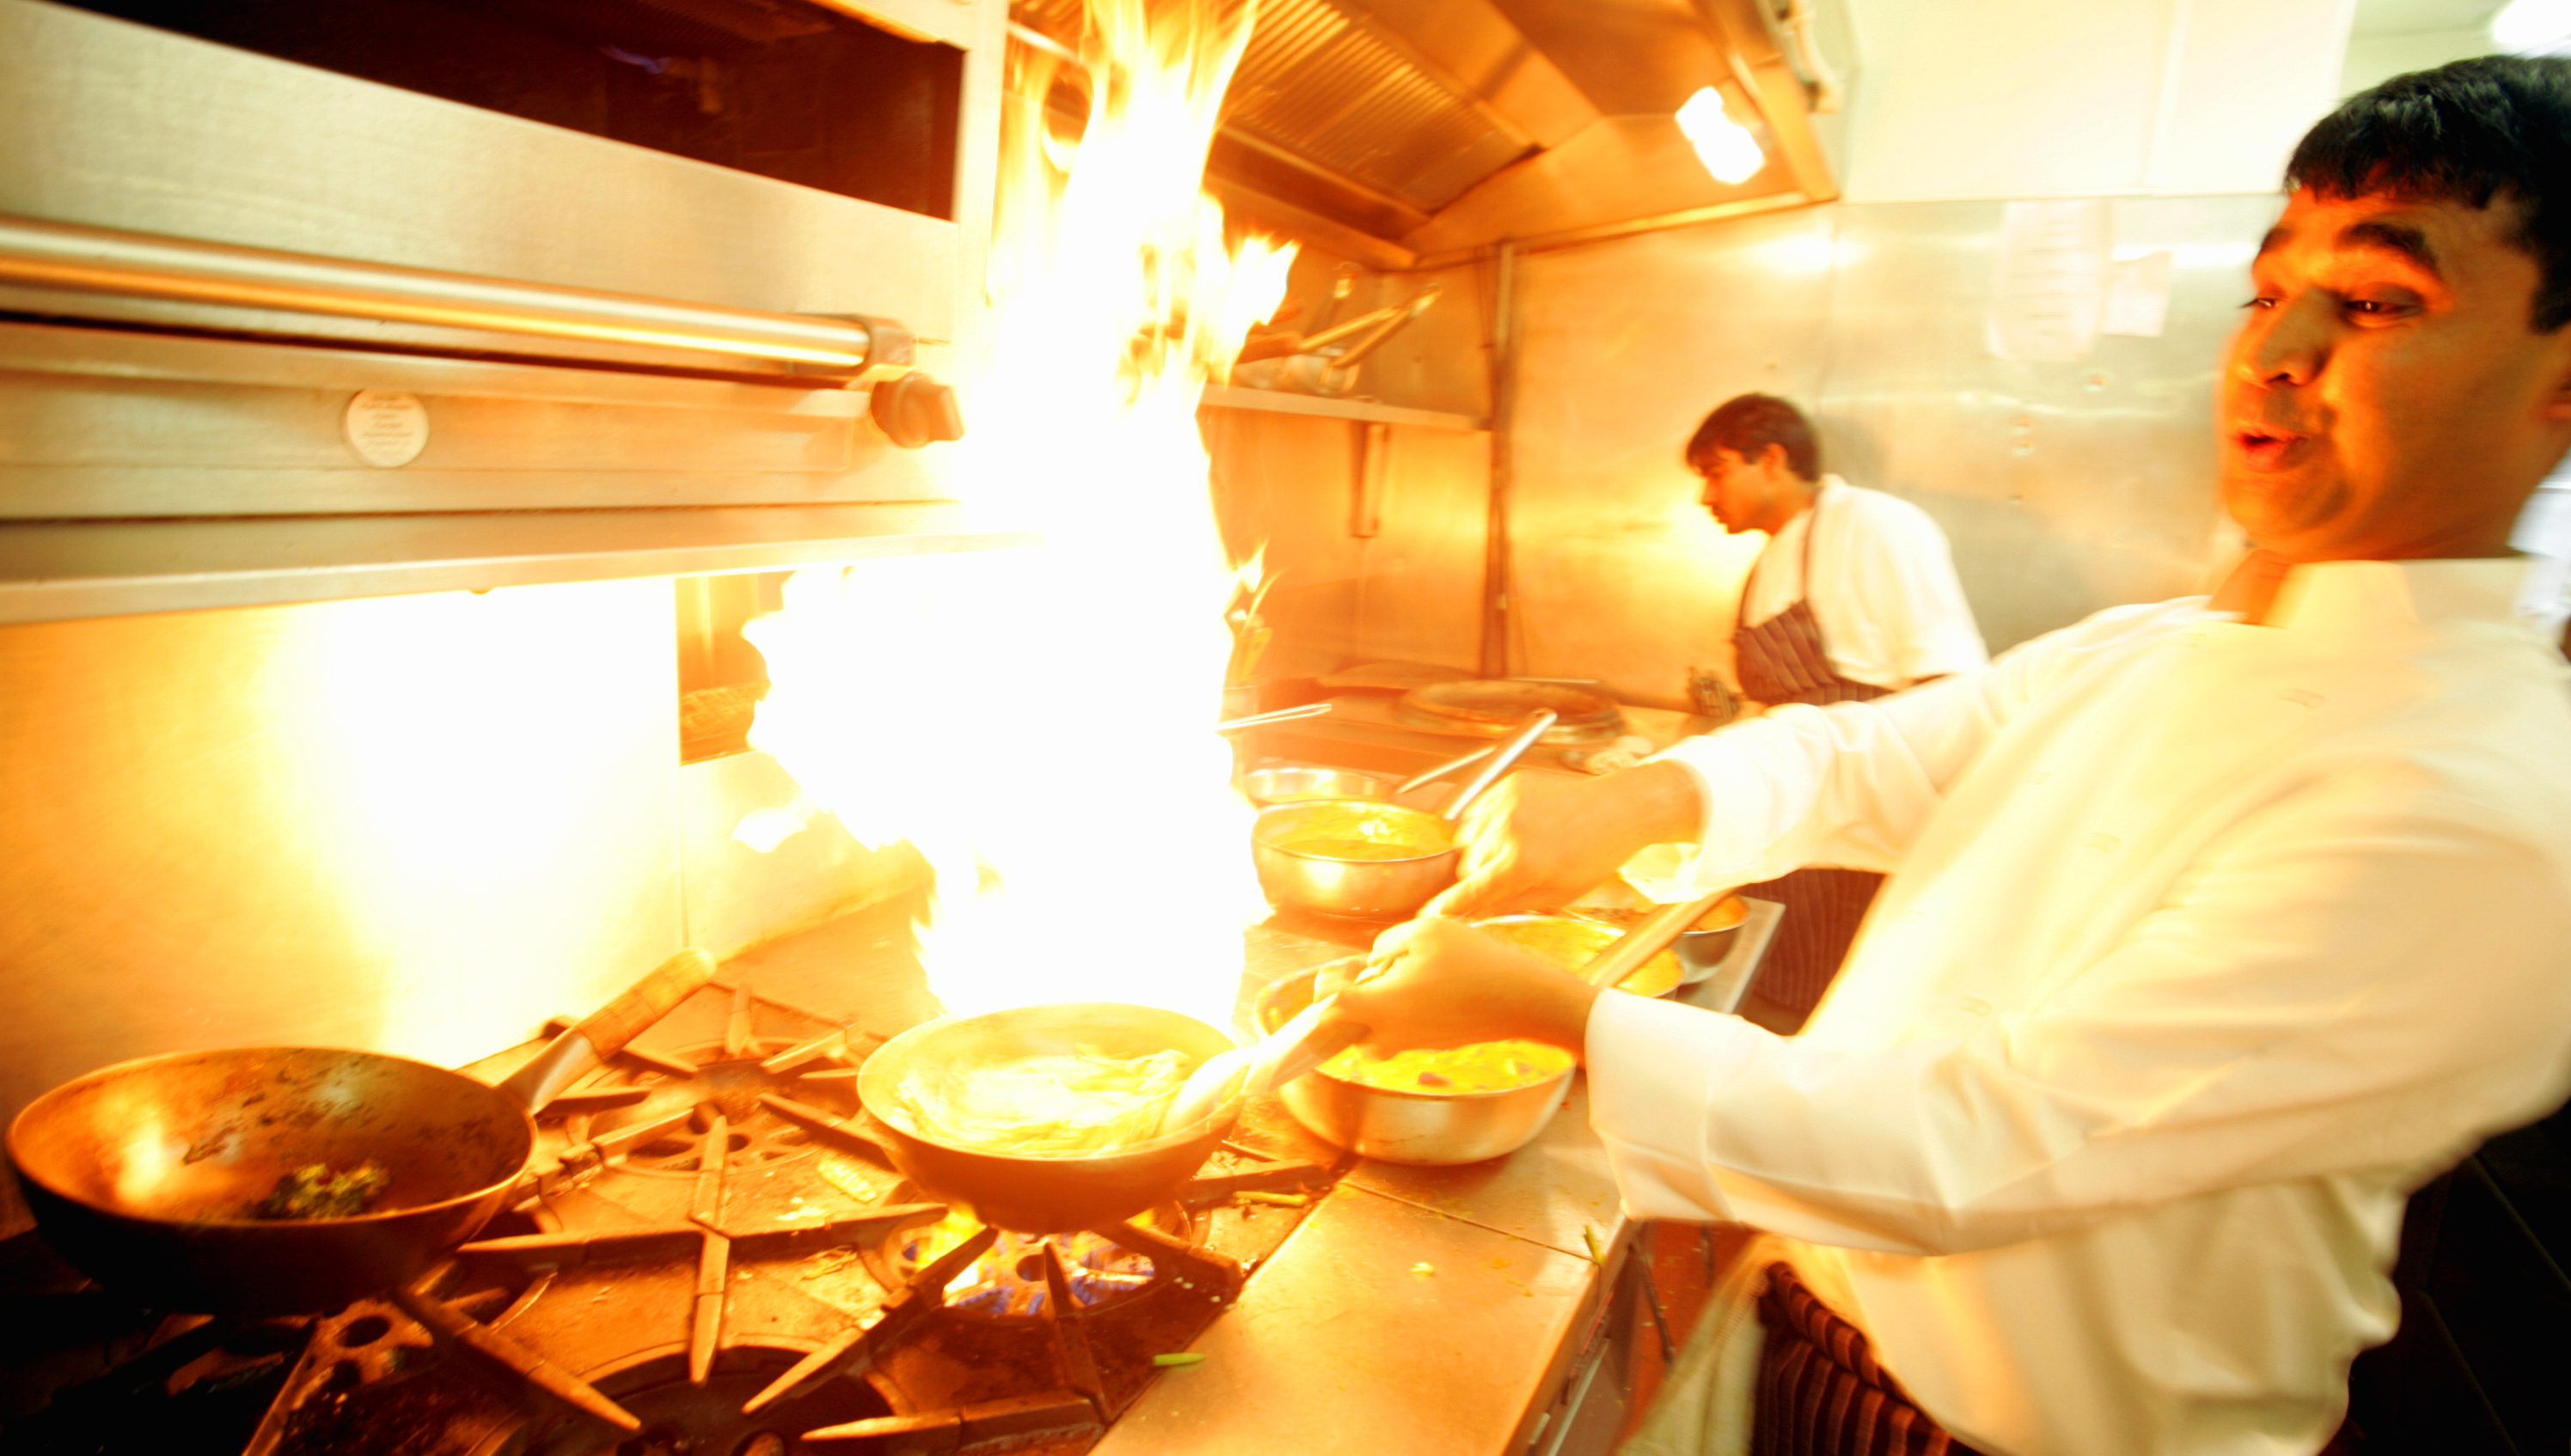 A chef in in the Deyna restaurant stands back as he cooks a hot Indian dish, in London, Thursday Sept 29, 2005, as a plaque dedicated to Sake Dean Mahomed is unveiled nearby, at the site of Britain's first curry house. The original curry house founded in 1810 and advertised Indian dishes of highest perfection, which started the British love affair with curry, now as popular at fish and chips. India-born Sake Dean Mahomed was a shampooist for King George IV and a soldier with the East India Company's army, but it was the curry house that he started in 1810 that brought him fame. (AP Photo/Alastair Grant)